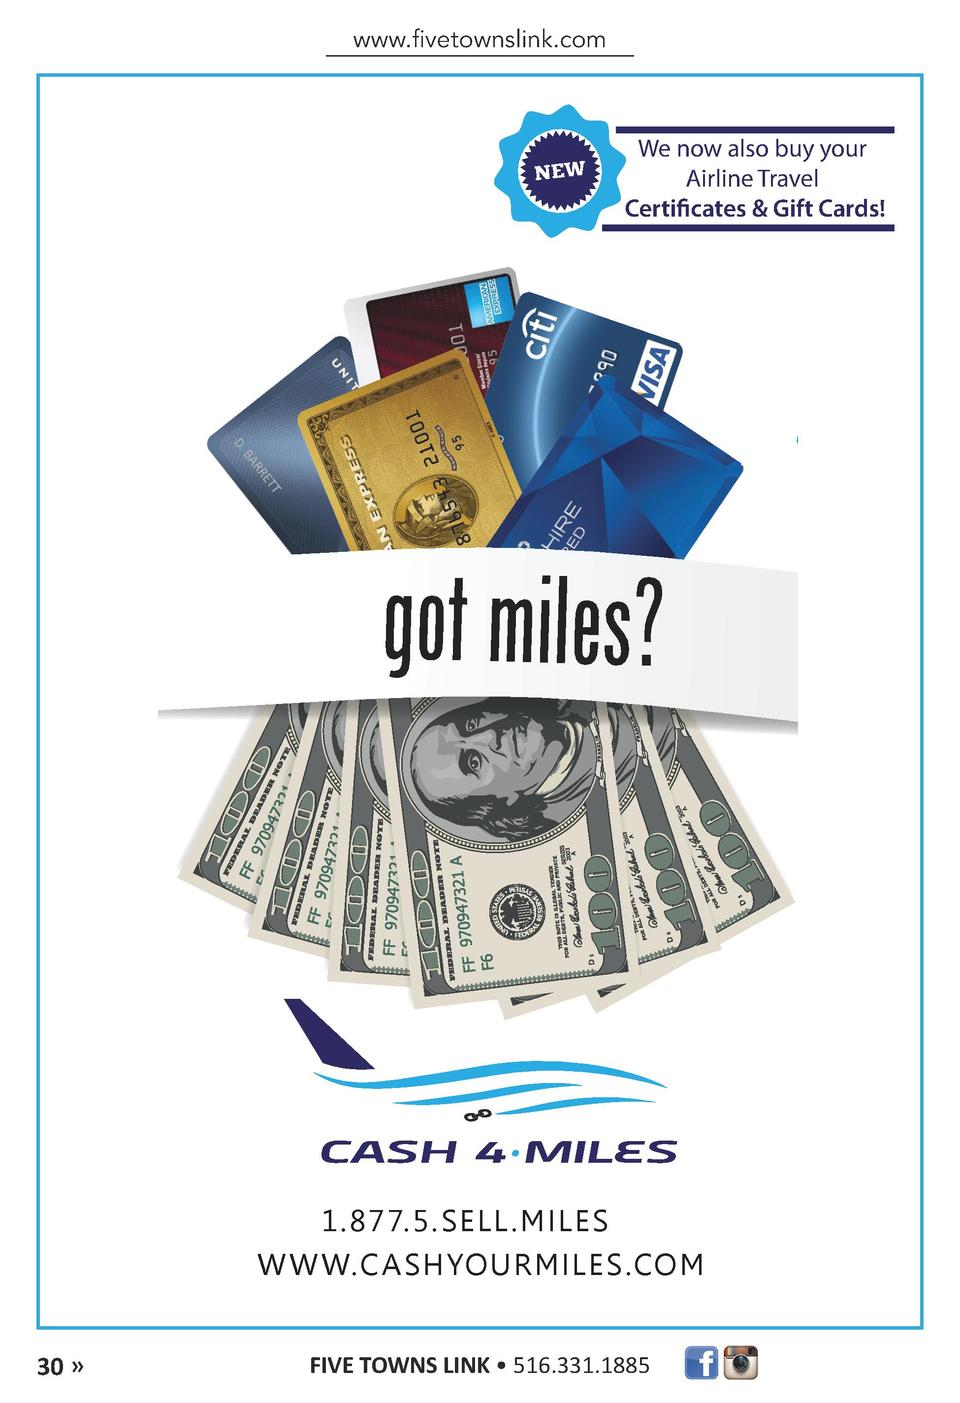 www.fivetownslink.com  We now also buy your Airline Travel Certificates   Gift Cards   1.877.5.SELL.MILES We now also buy ...